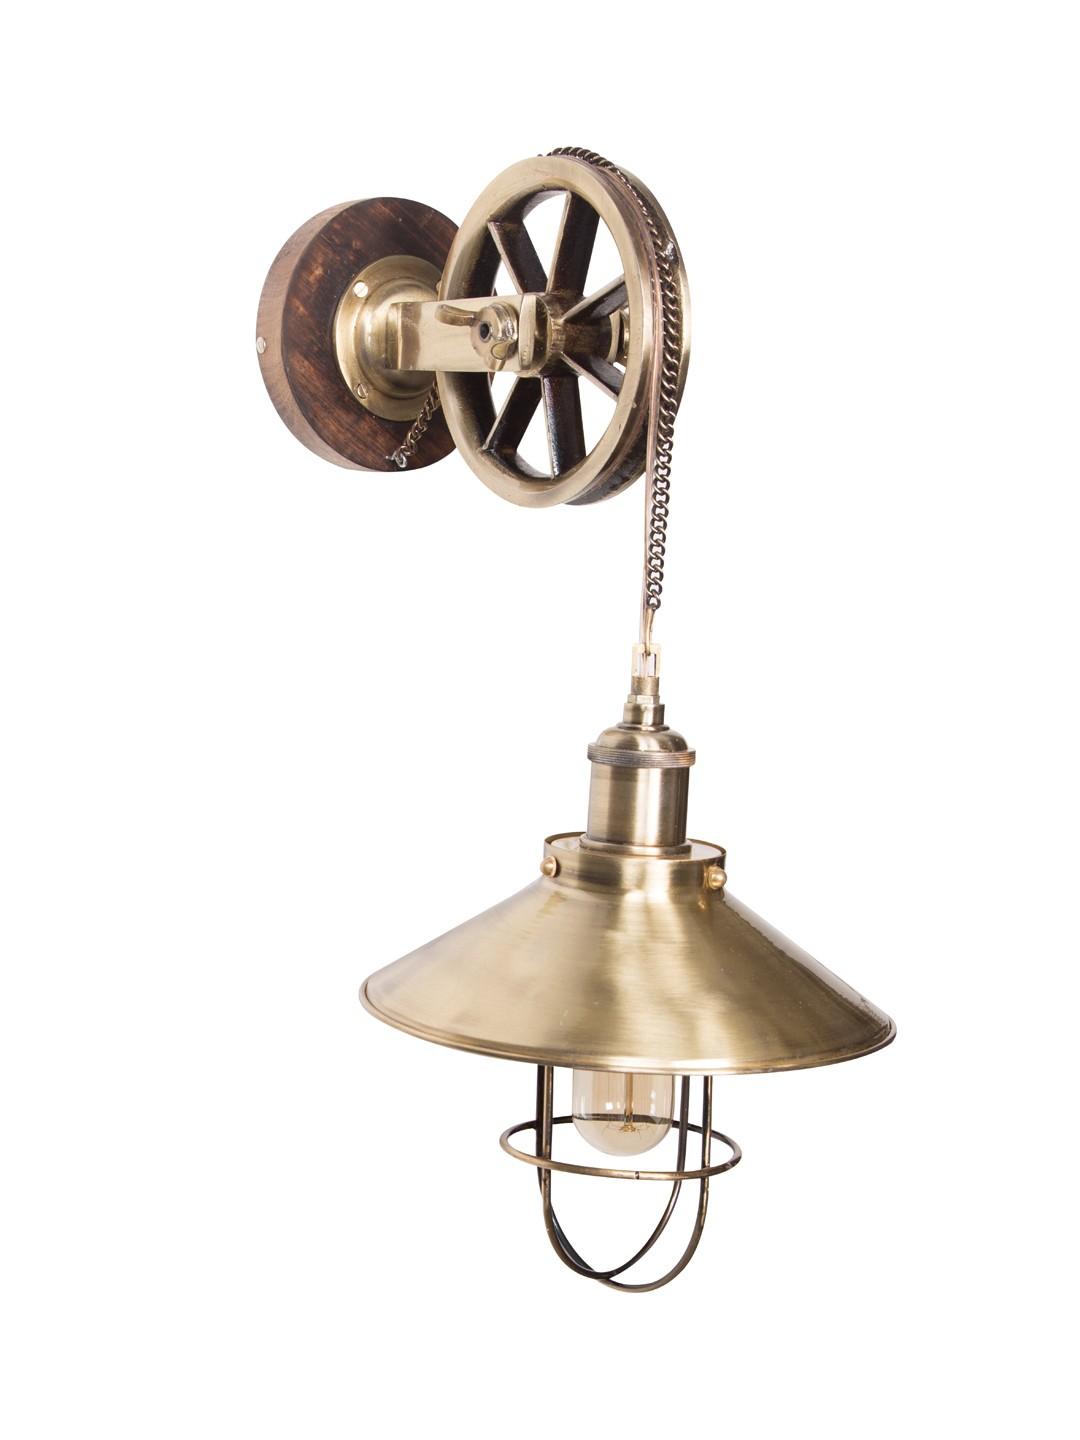 Fos Lighting Industrial Barn Antique Pulley Wall Sconce